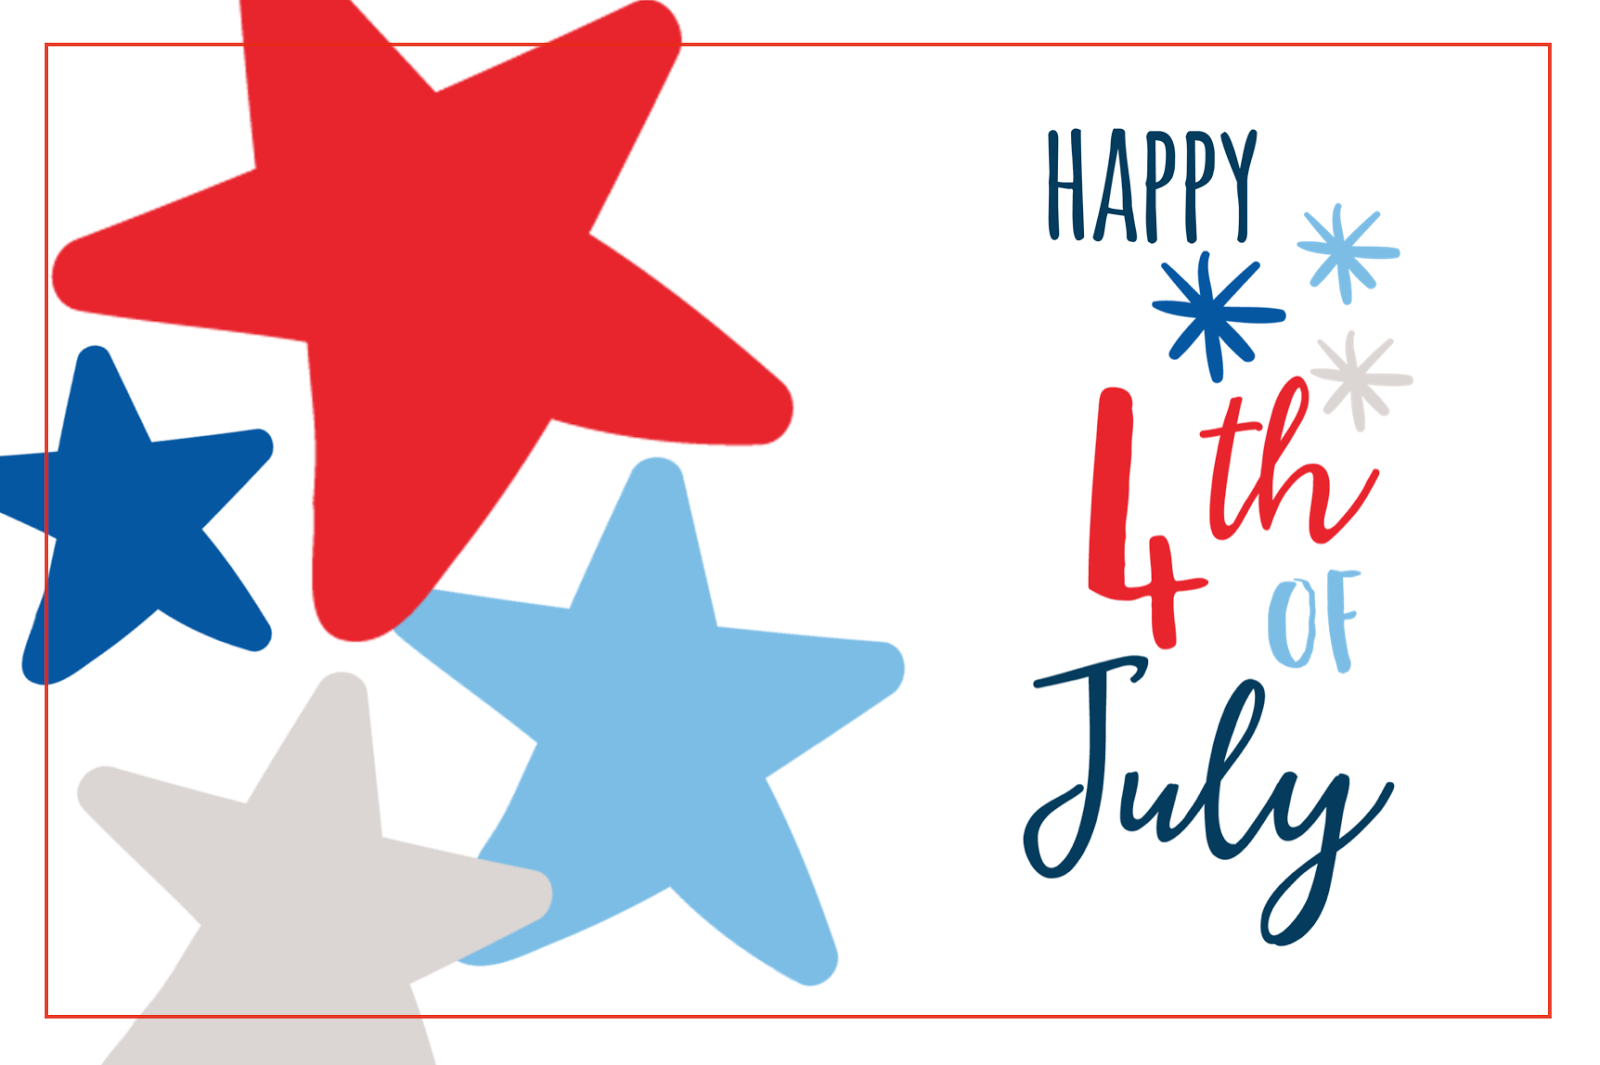 #july 4th #journaling card #freedom #free download #printable #stars #4th of july #free journaling card